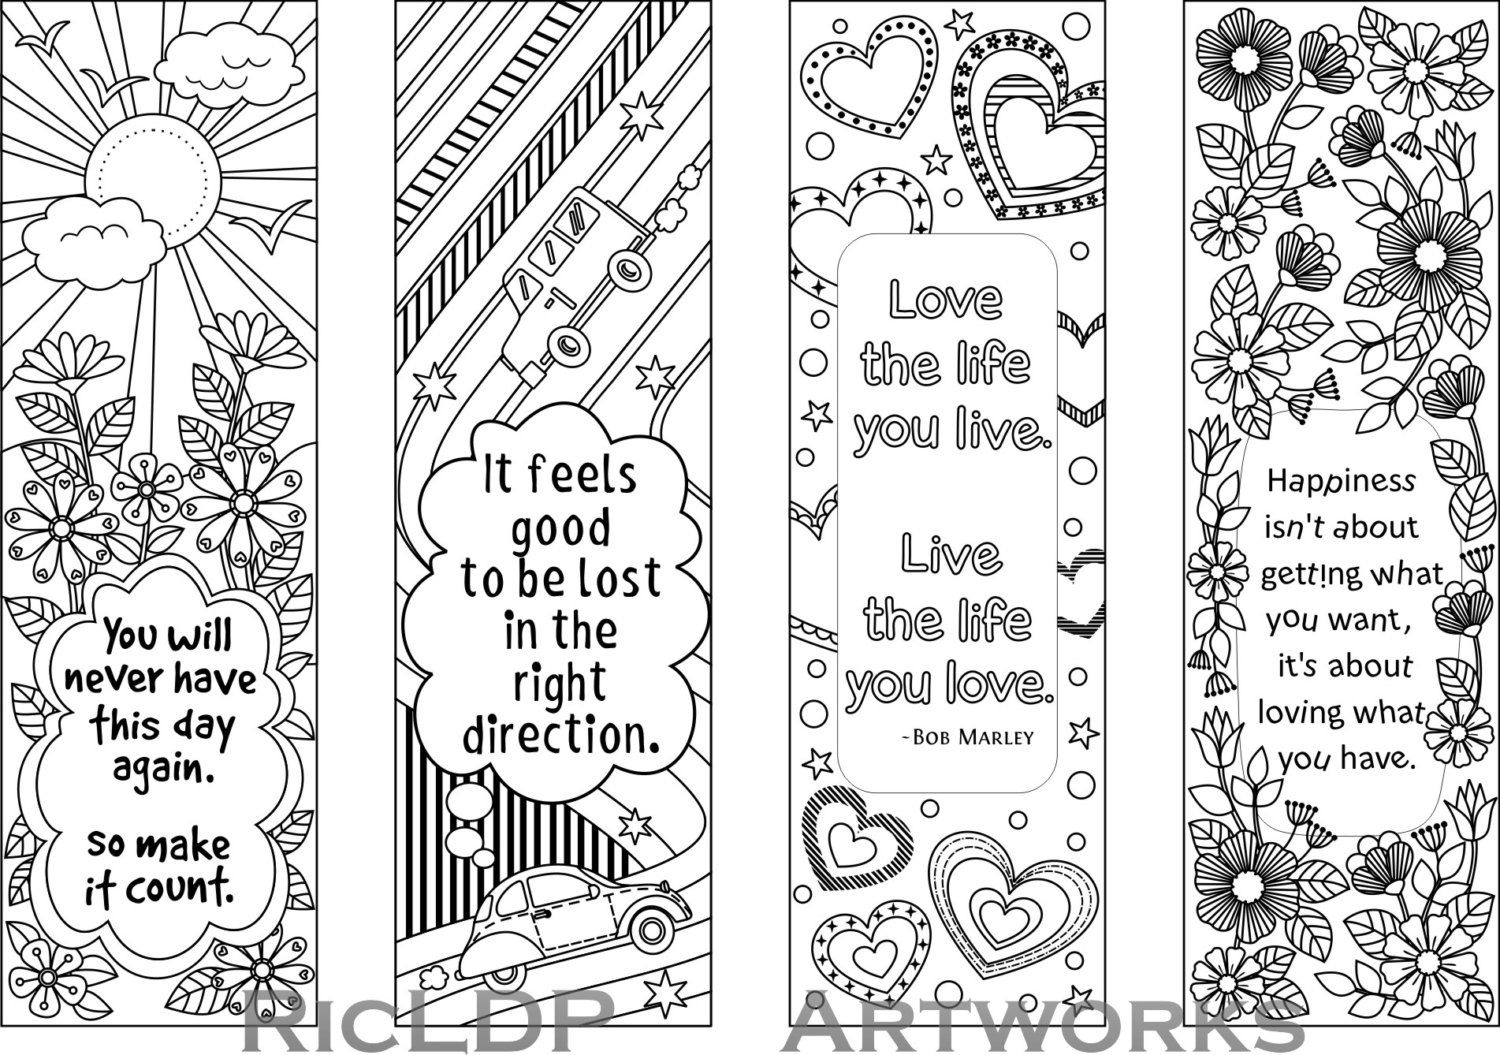 Set Of 4 Coloring Bookmarks With Quotes, Bookmark Templates With - Free Printable Spring Bookmarks